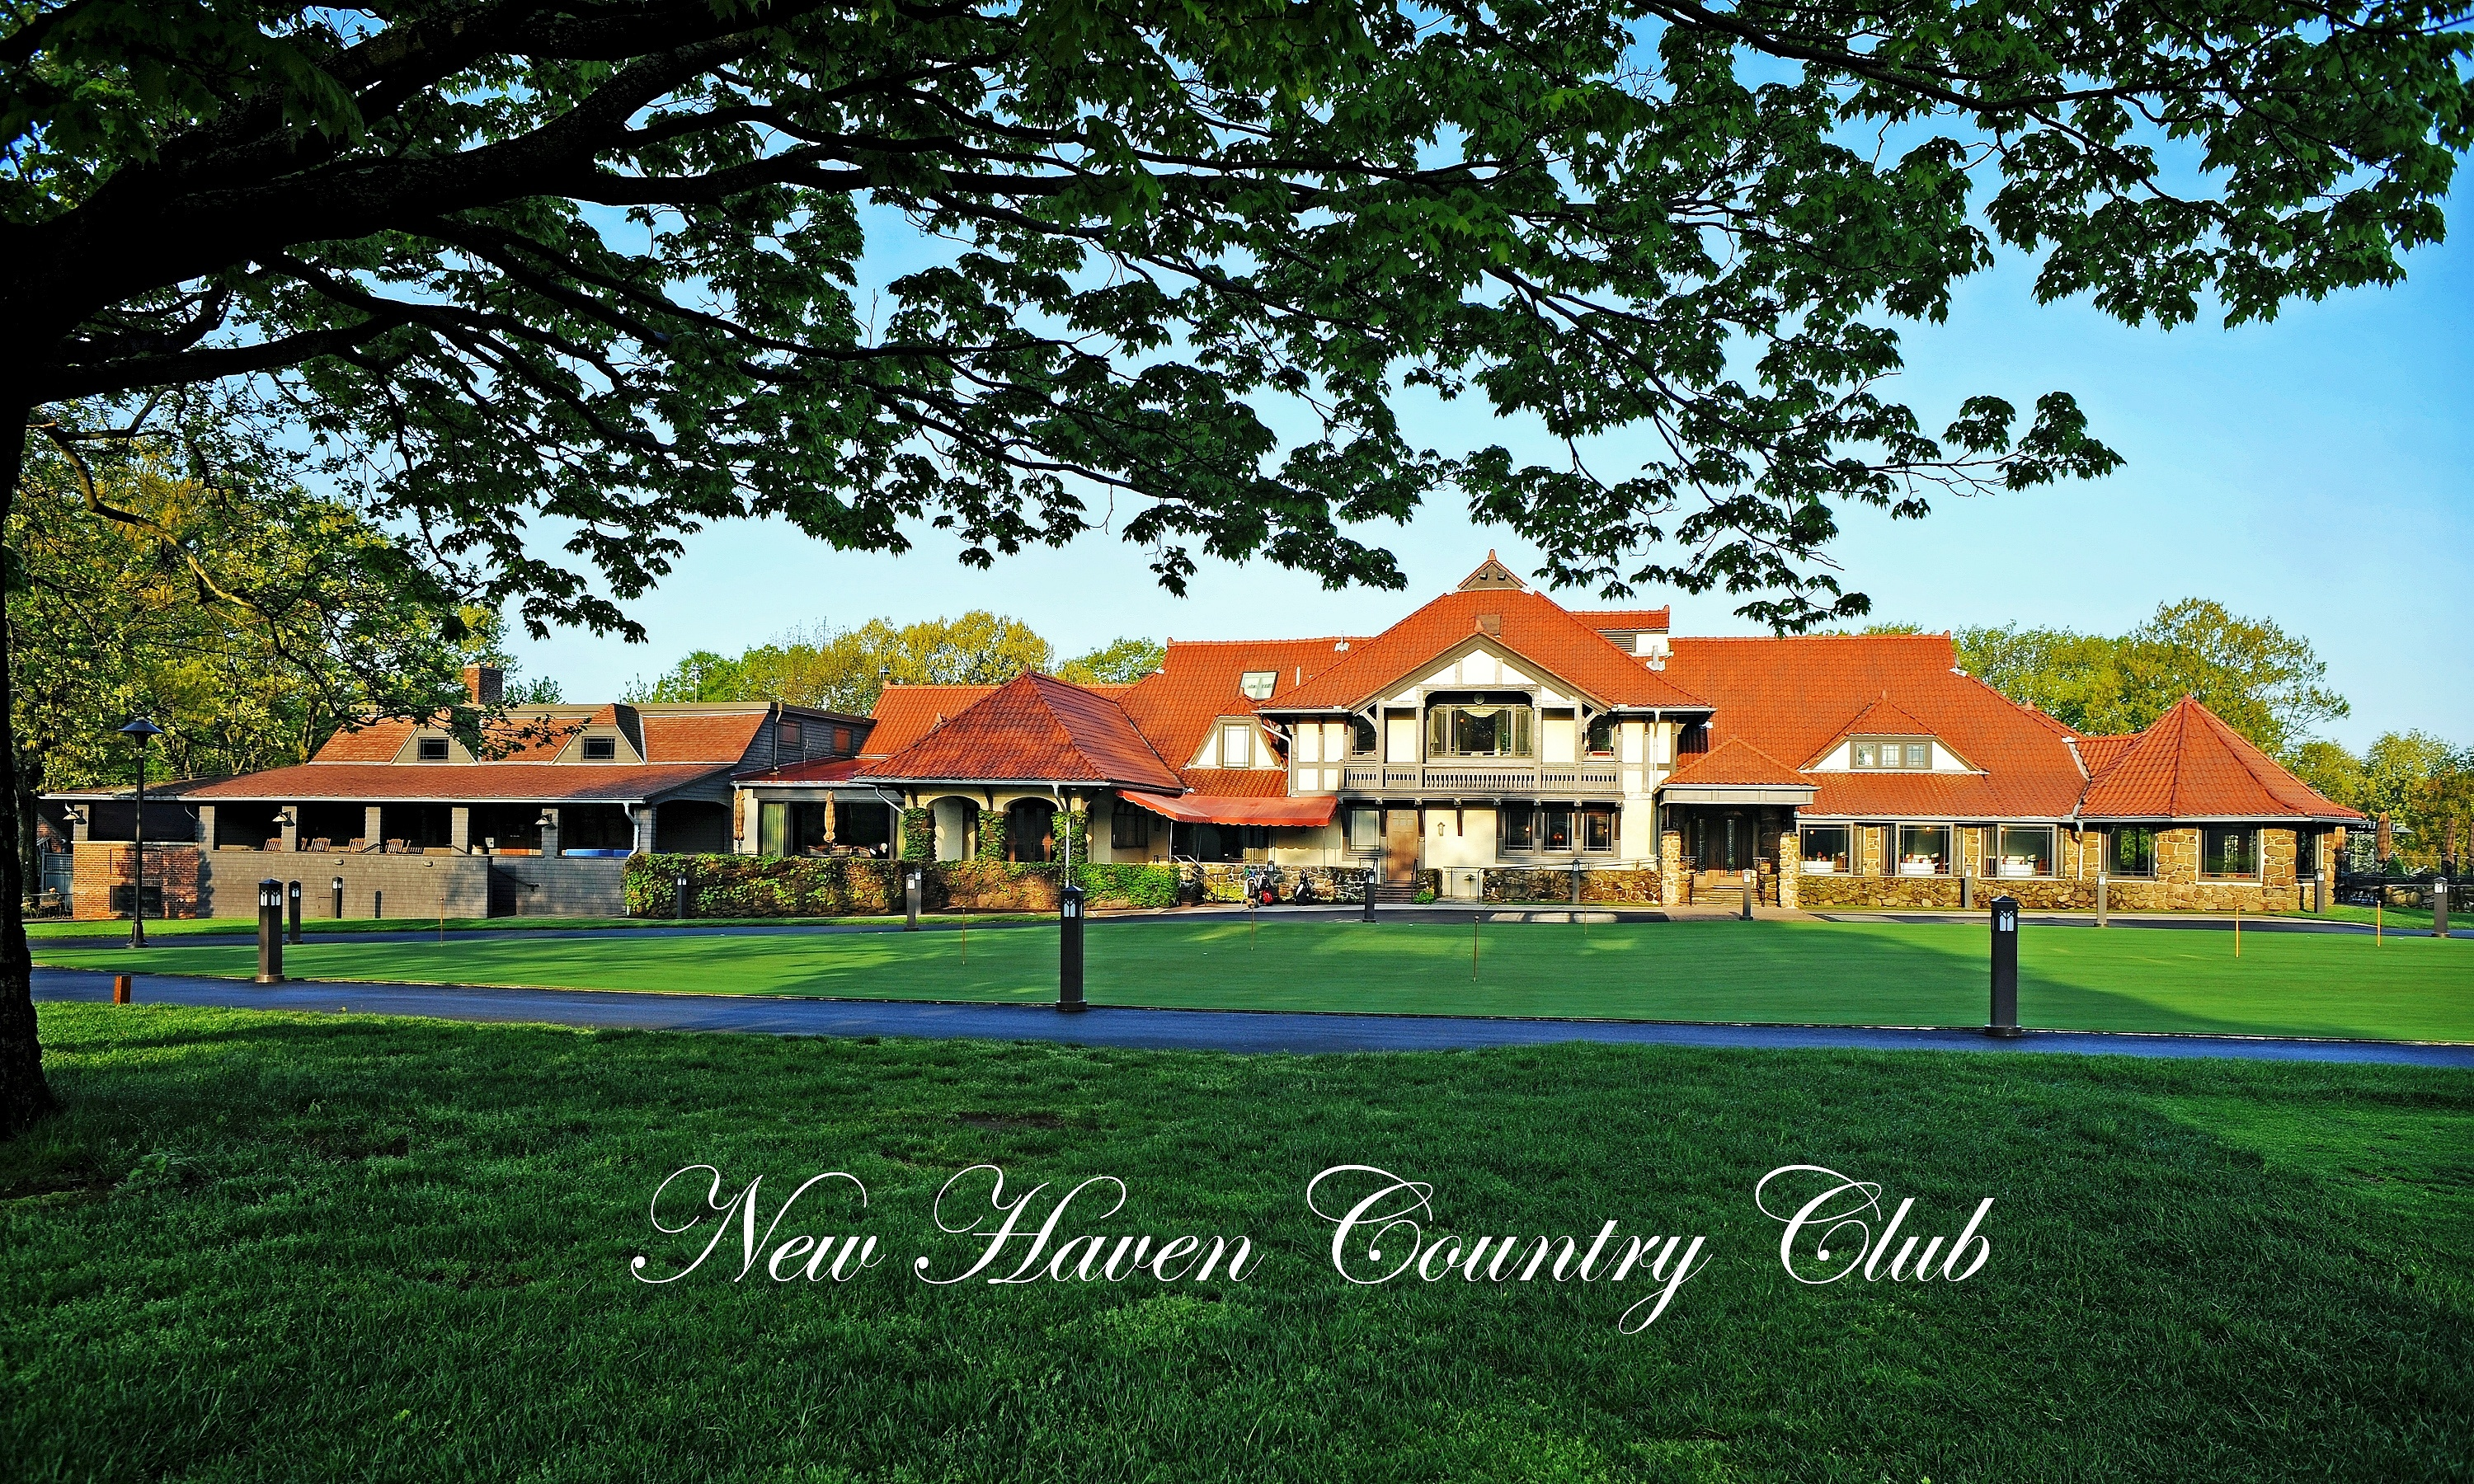 New Haven Country Club